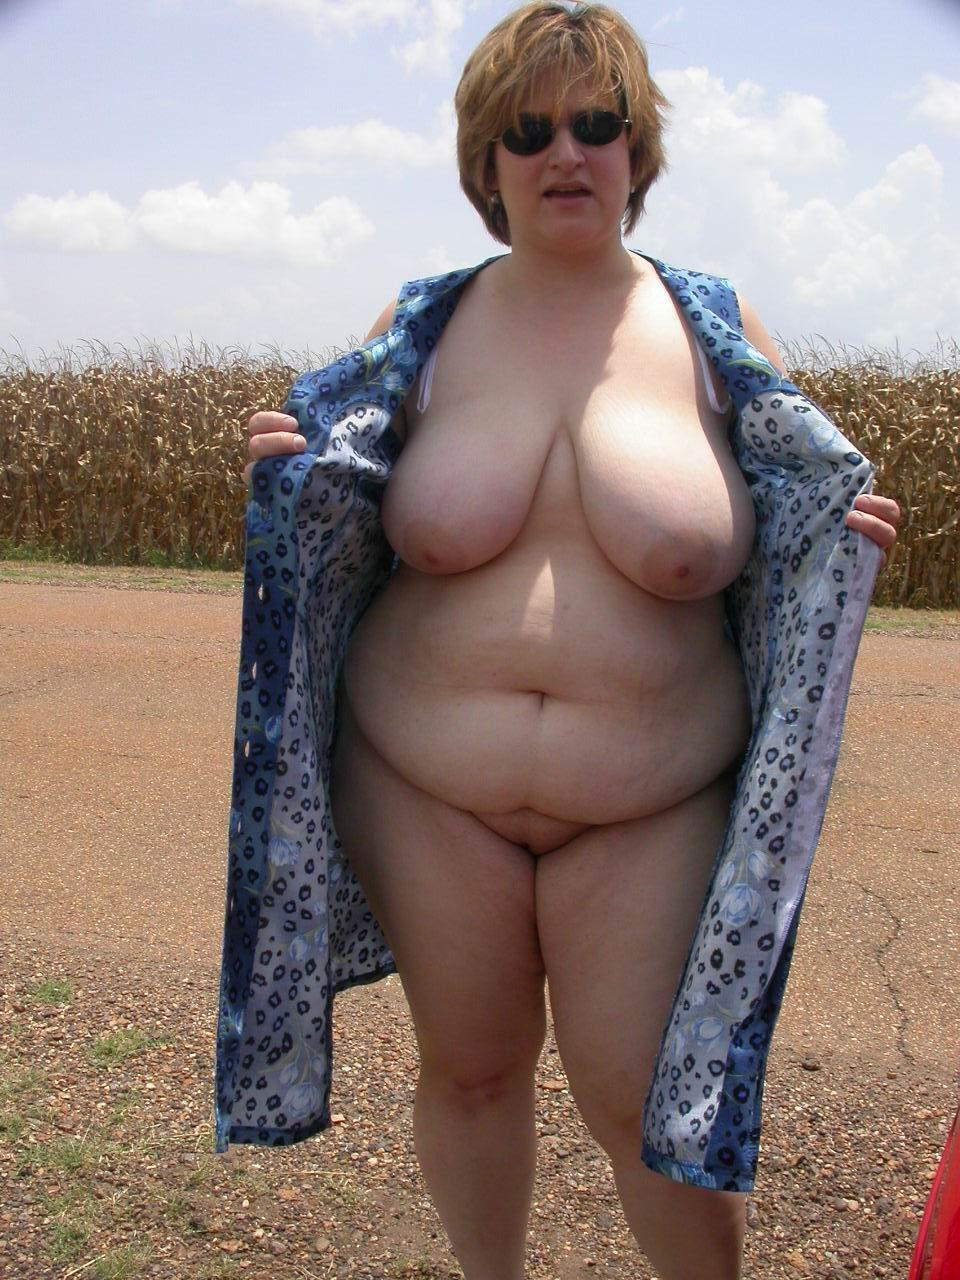 And mature big older women naked apologise